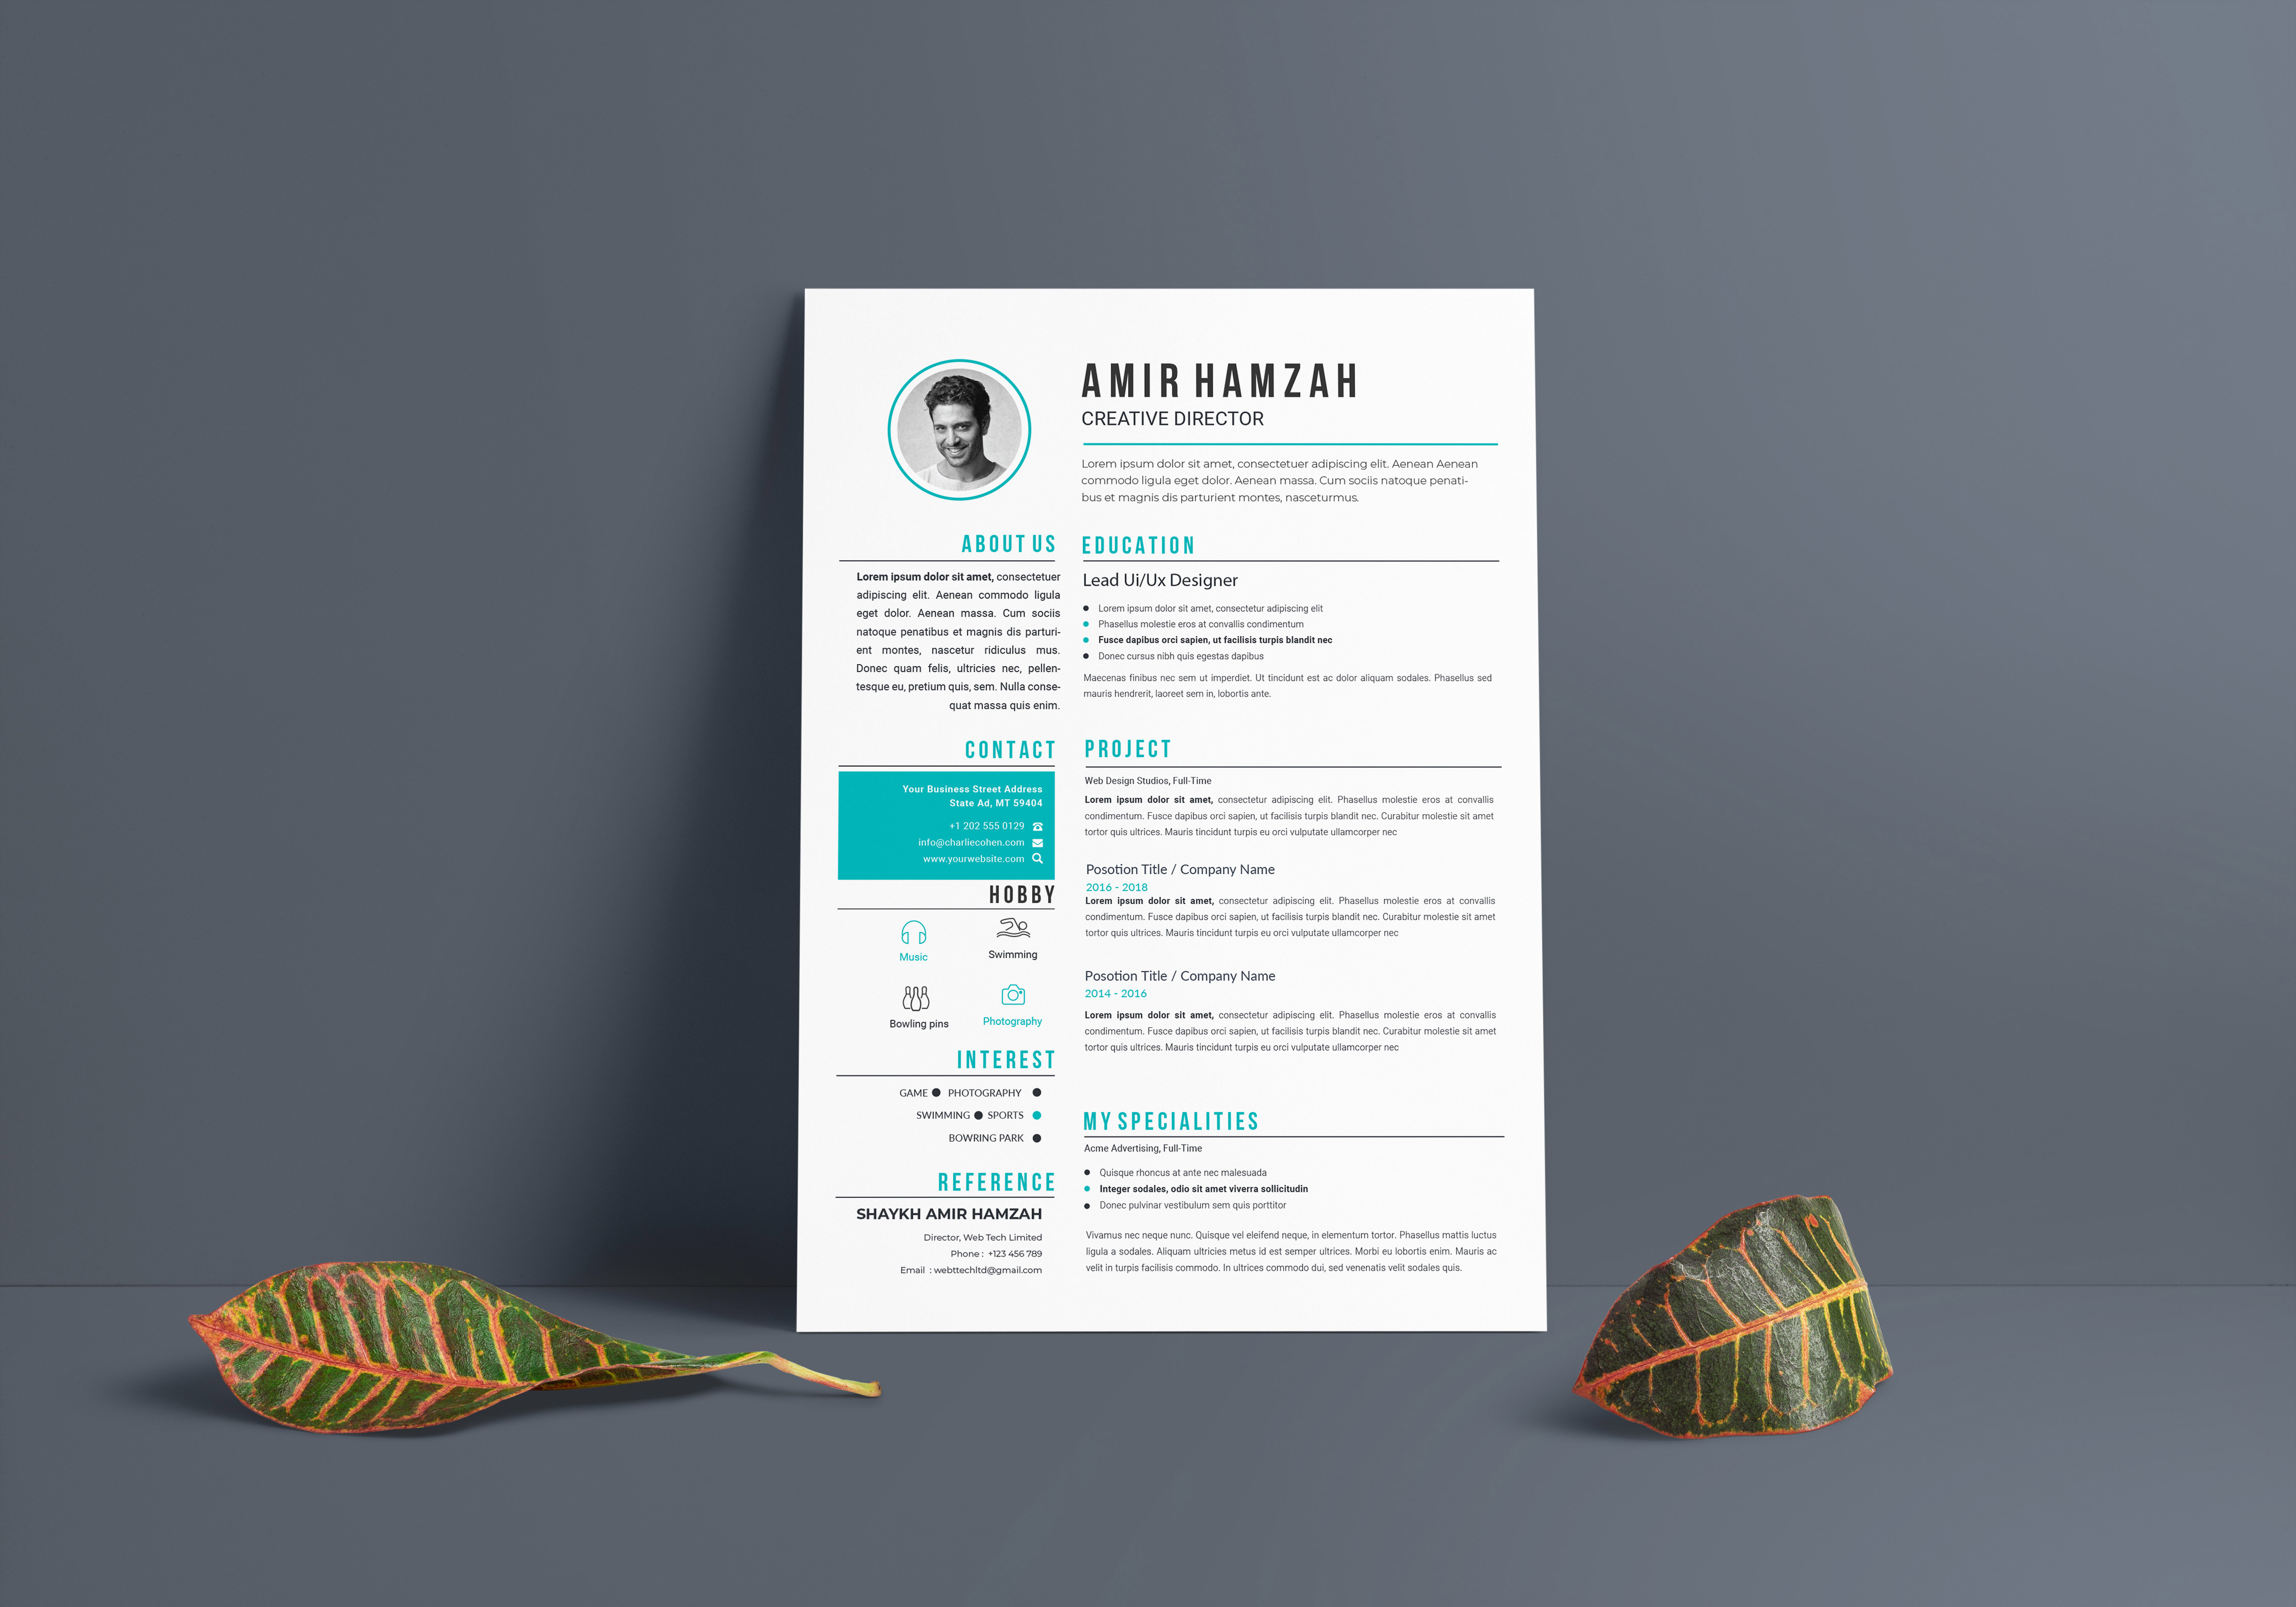 Eps Creative Cv Template Graphic Prime Graphic Design Templates,Kitchen Pantry Designs For Small Spaces